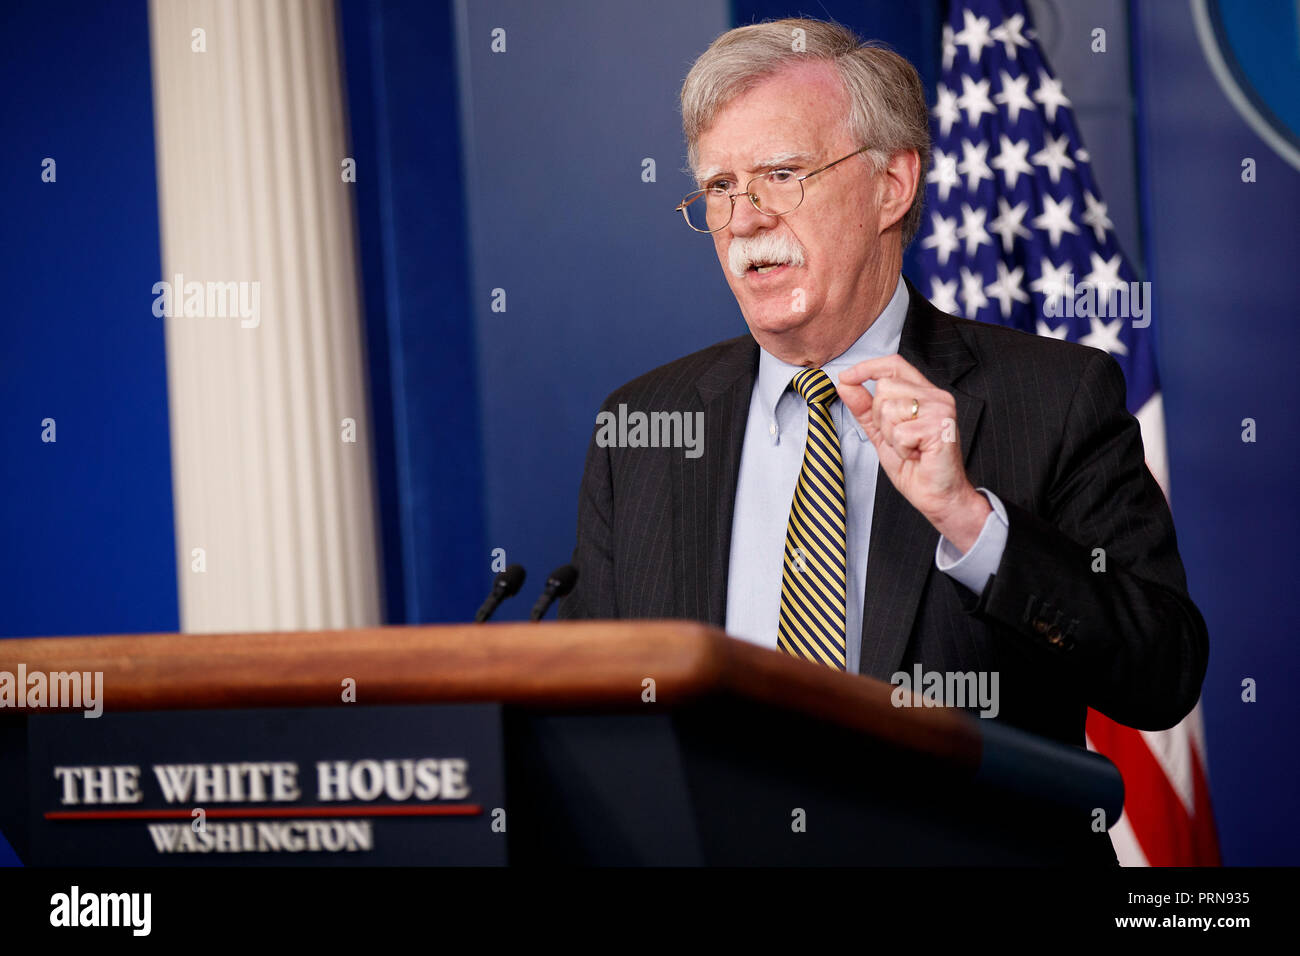 Washington, USA. 3rd Oct, 2018. U.S. National Security Adviser John Bolton speaks at a press briefing at the White House in Washington, DC, the United States, on Oct. 3, 2018. John Bolton said here on Wednesday that the United States is withdrawing from the Optional Protocol to the Vienna Convention on dispute resolution. Credit: Ting Shen/Xinhua/Alamy Live News - Stock Image